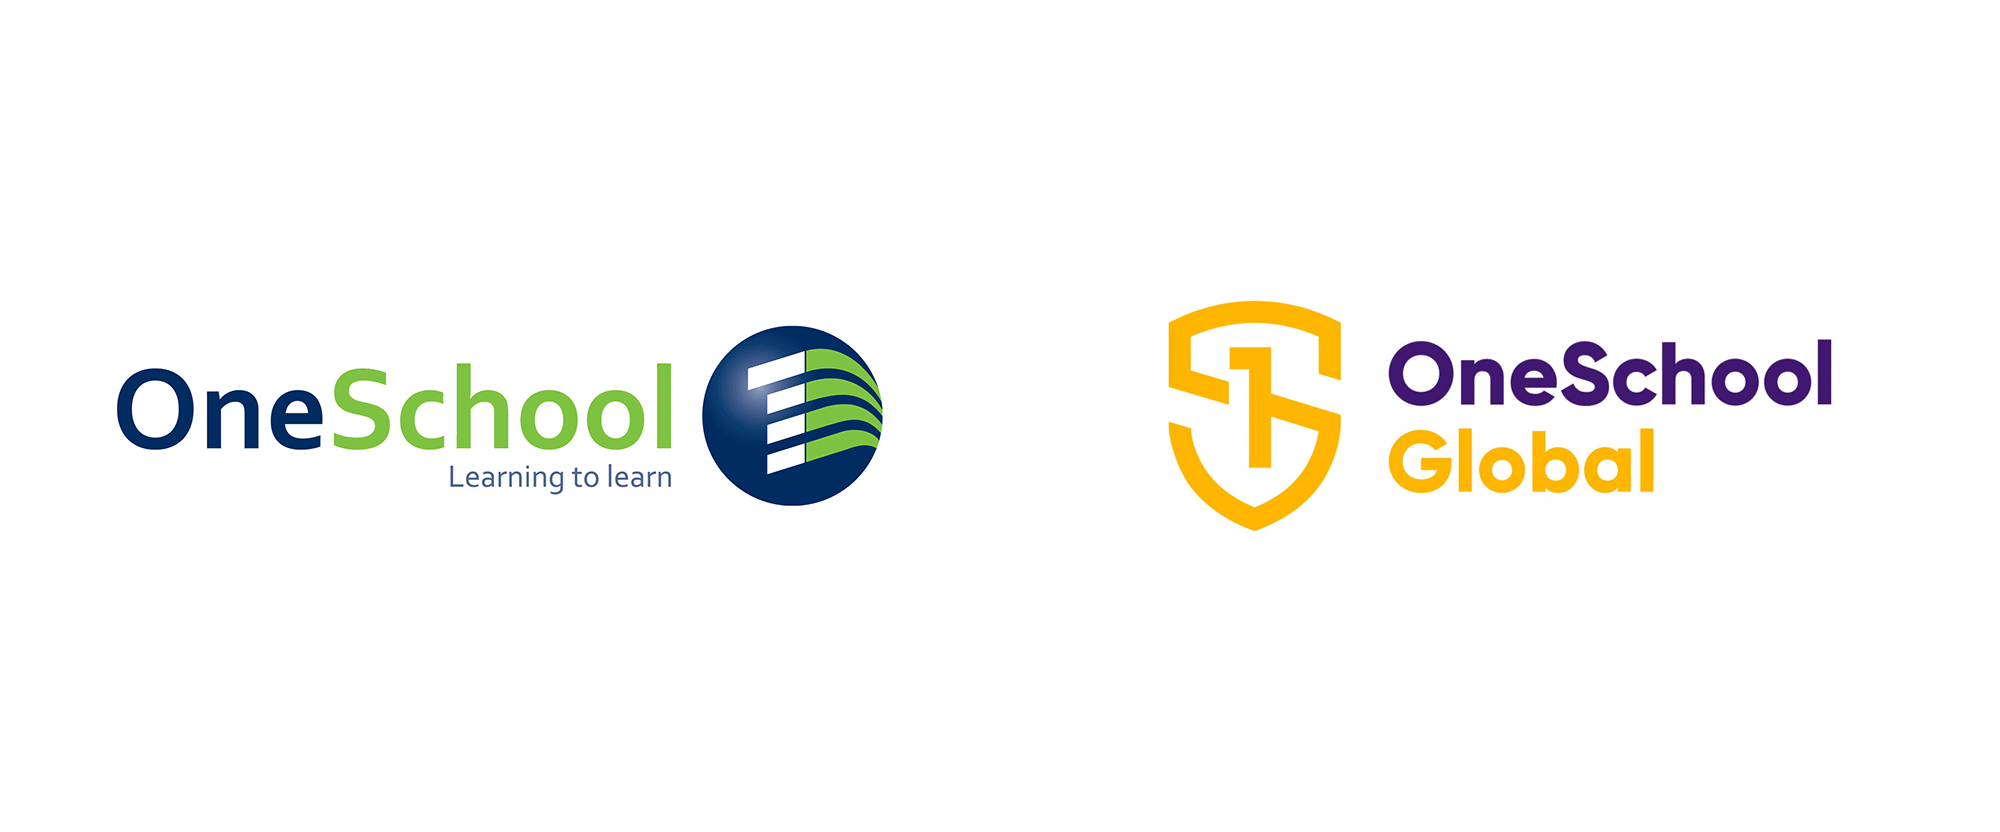 New Logo and Identity for OneSchool Global by Hulsbosch